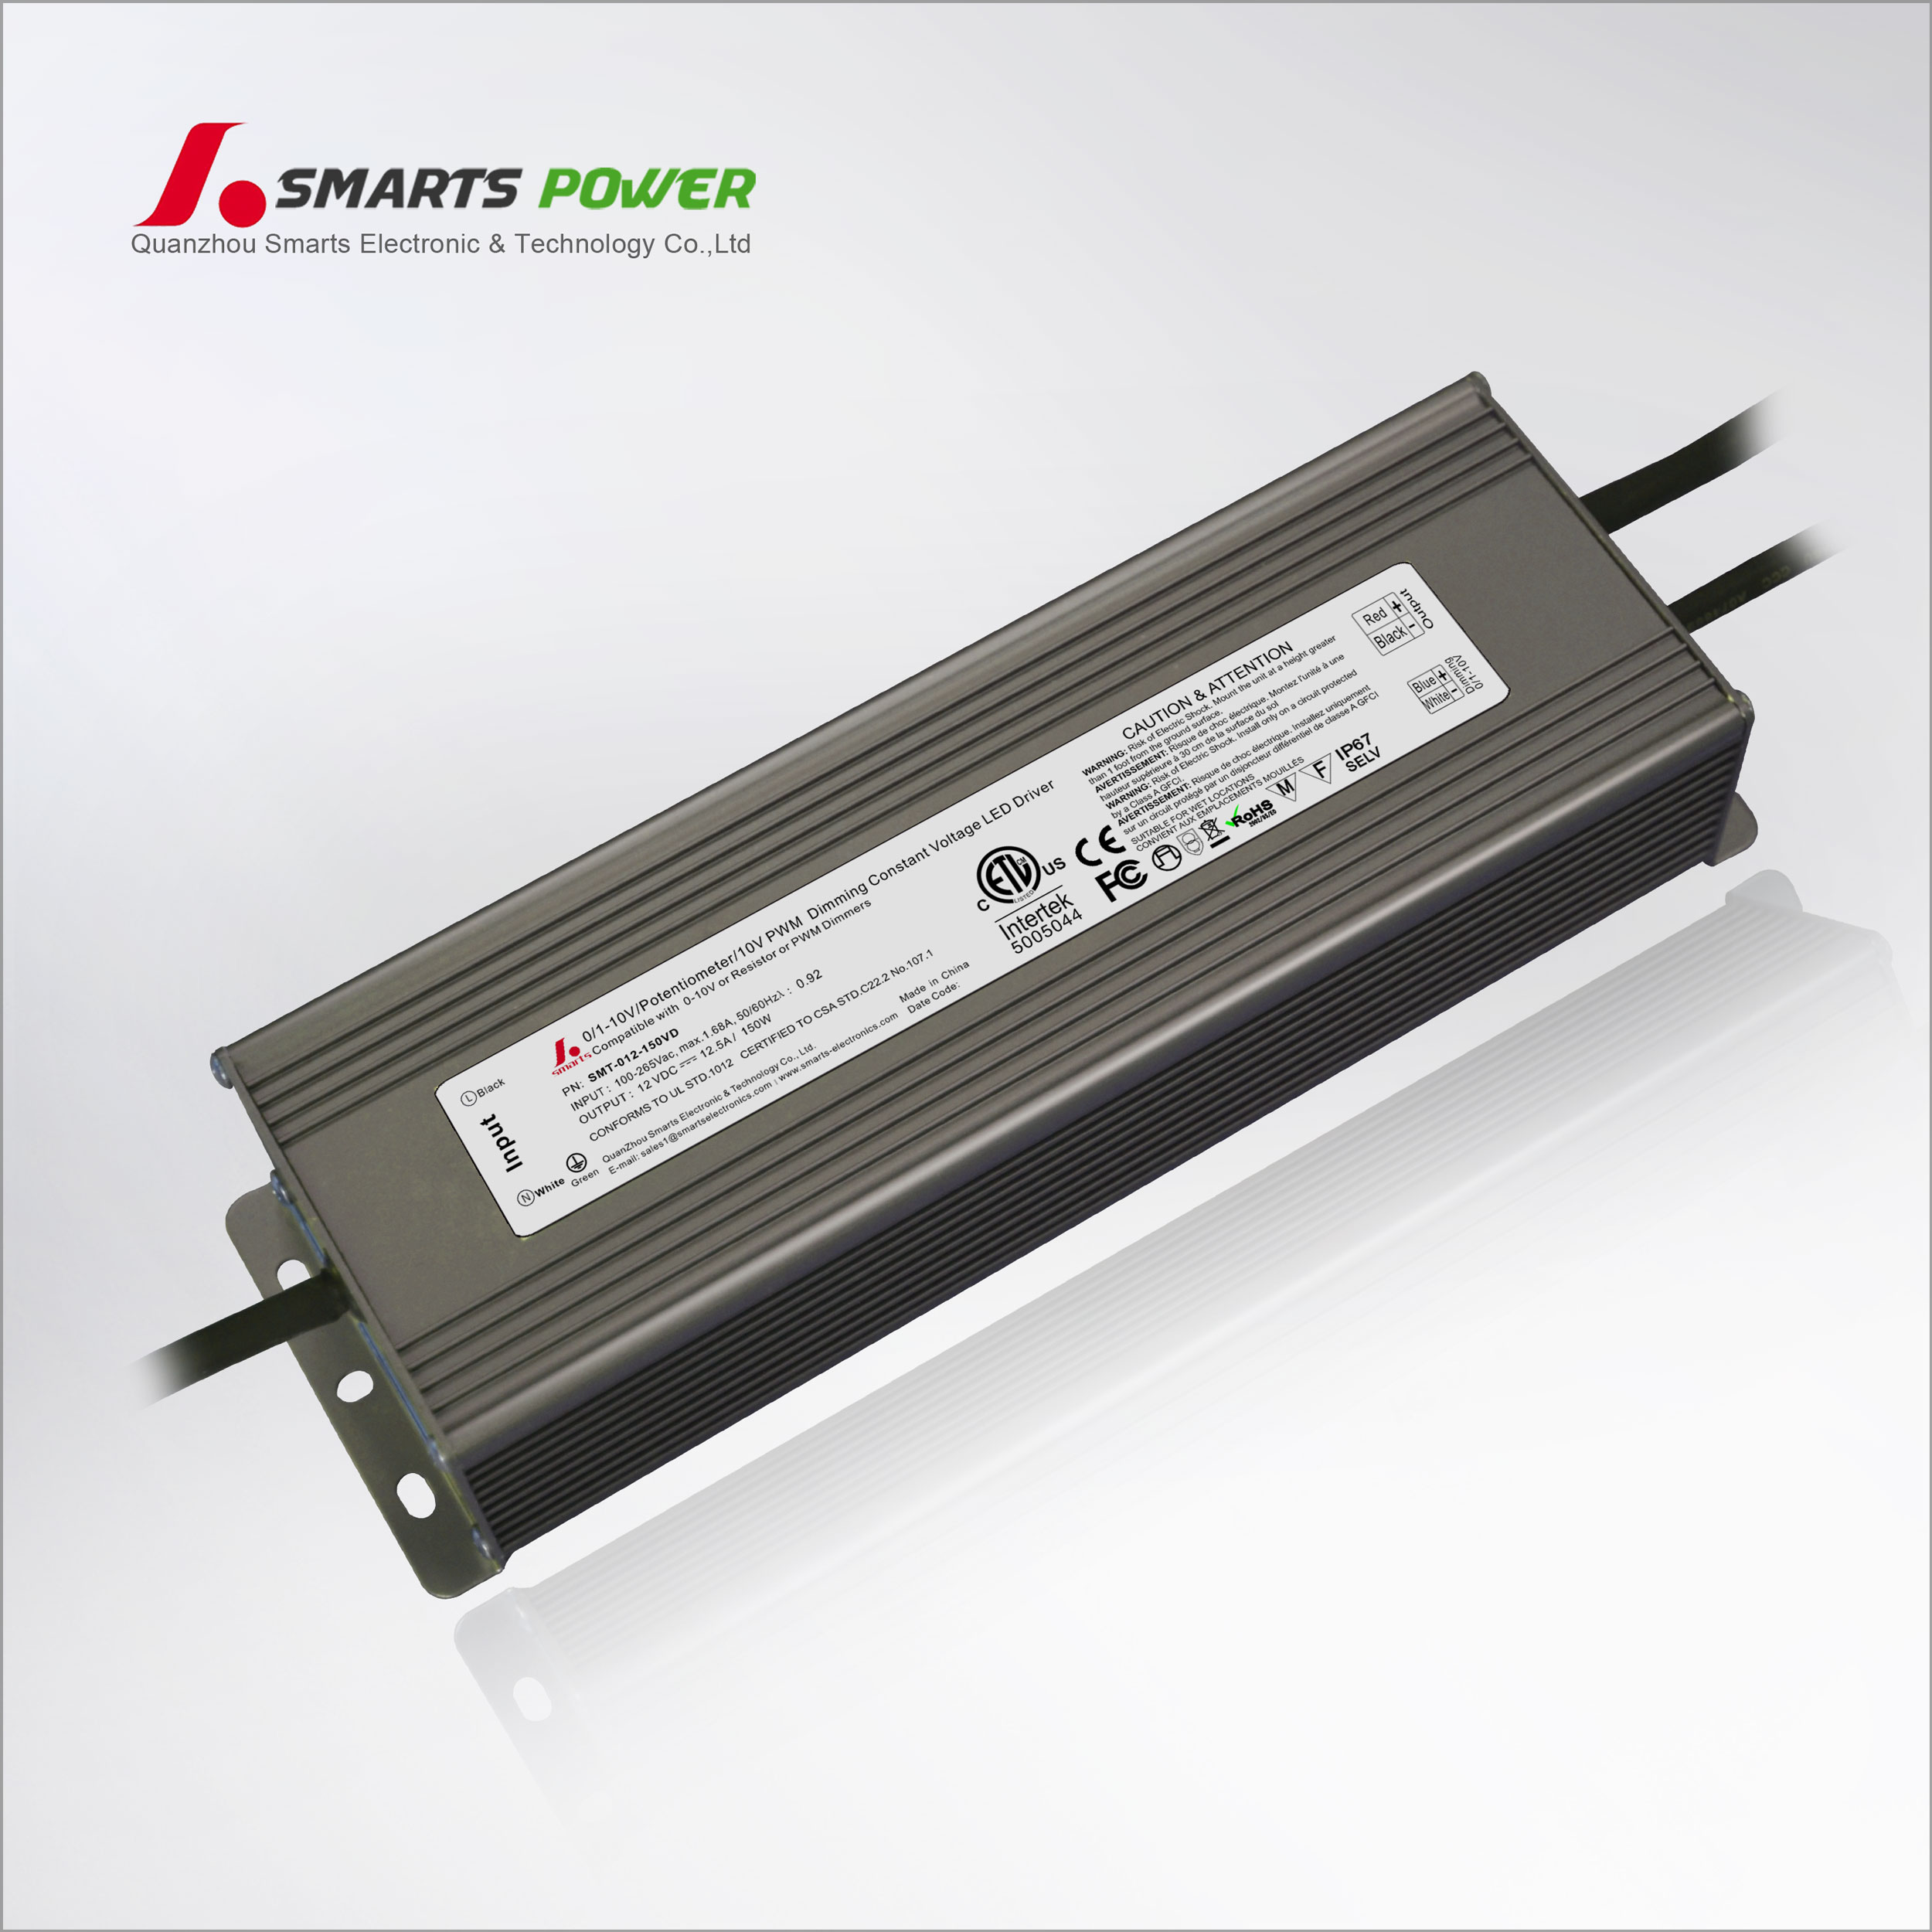 Trailing edge led dimmers